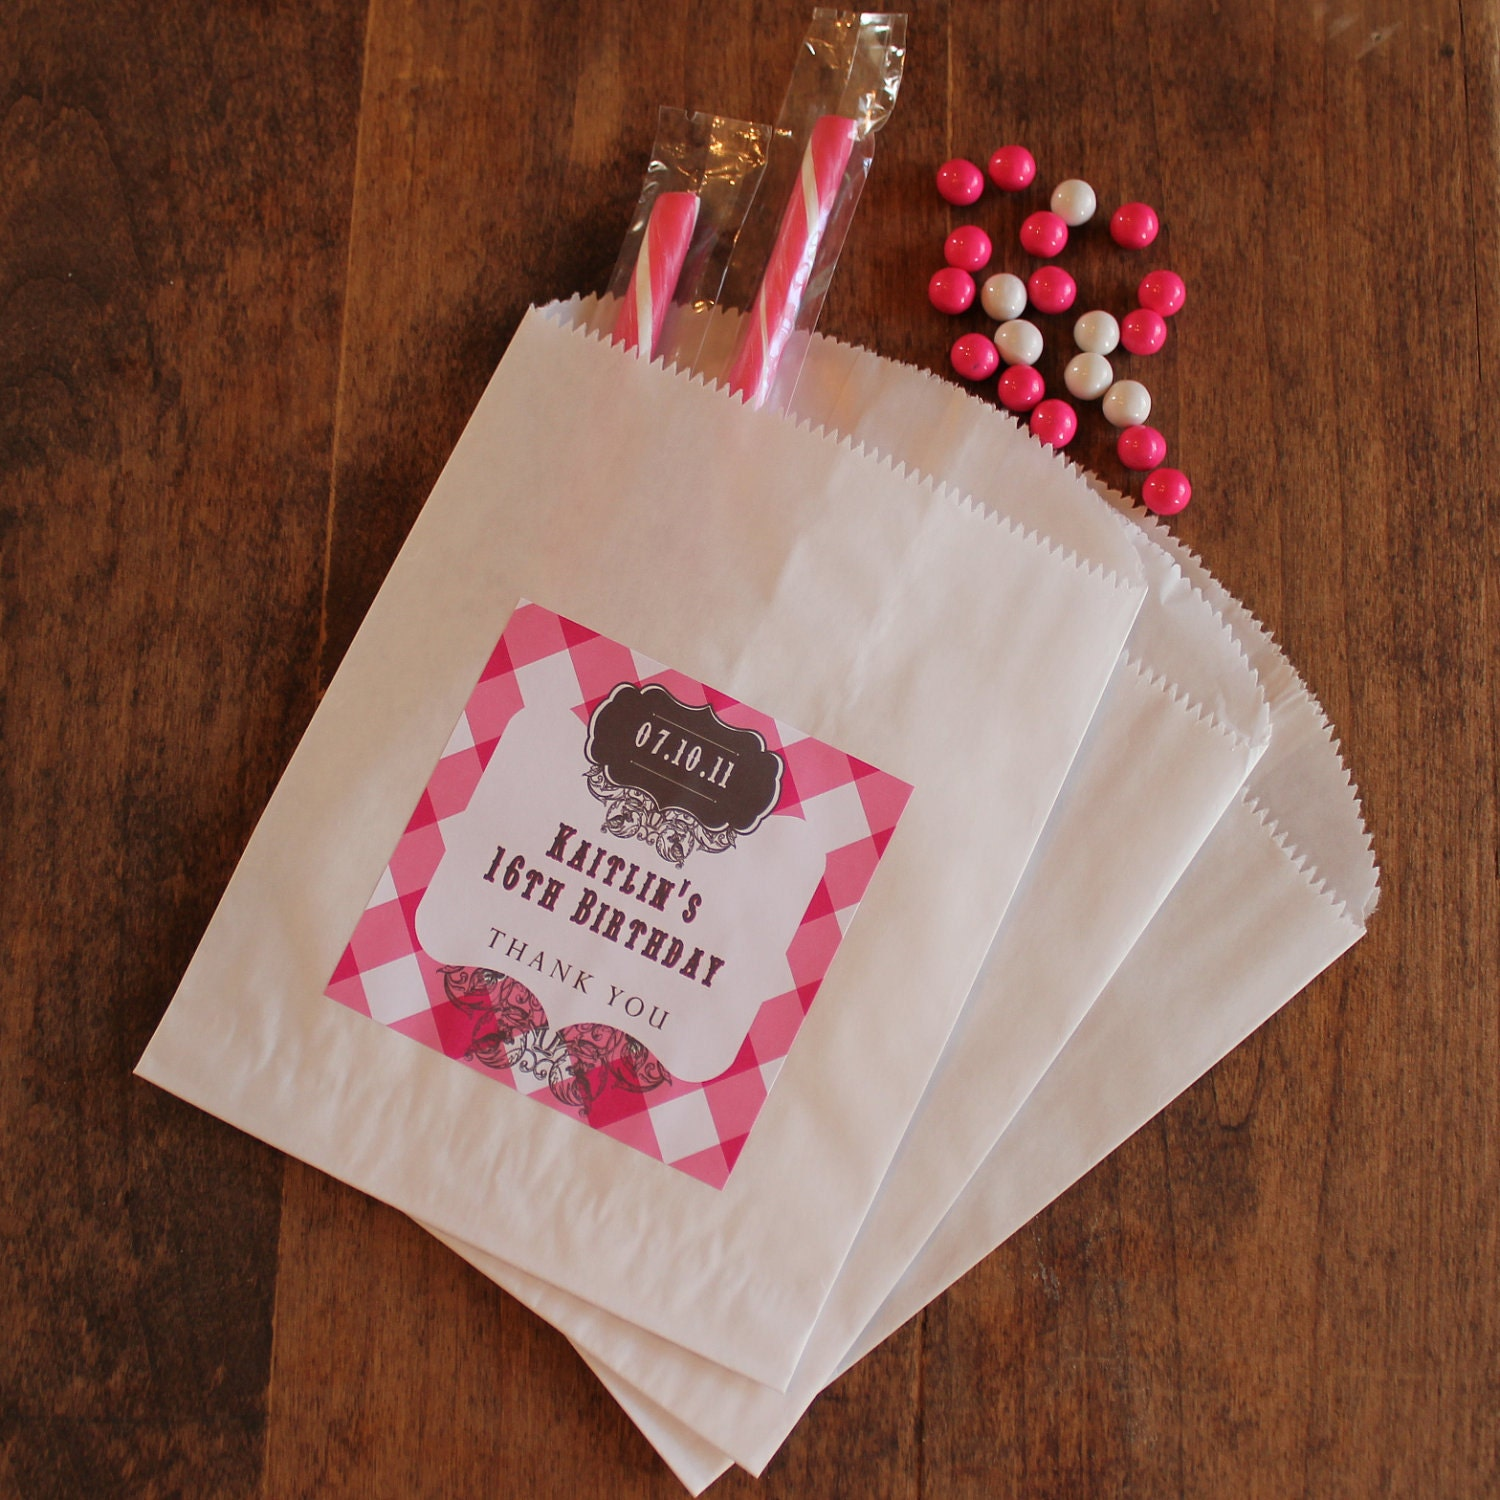 24 Sweet 16 Party Favor Bags With Personalized By Thefavorbox